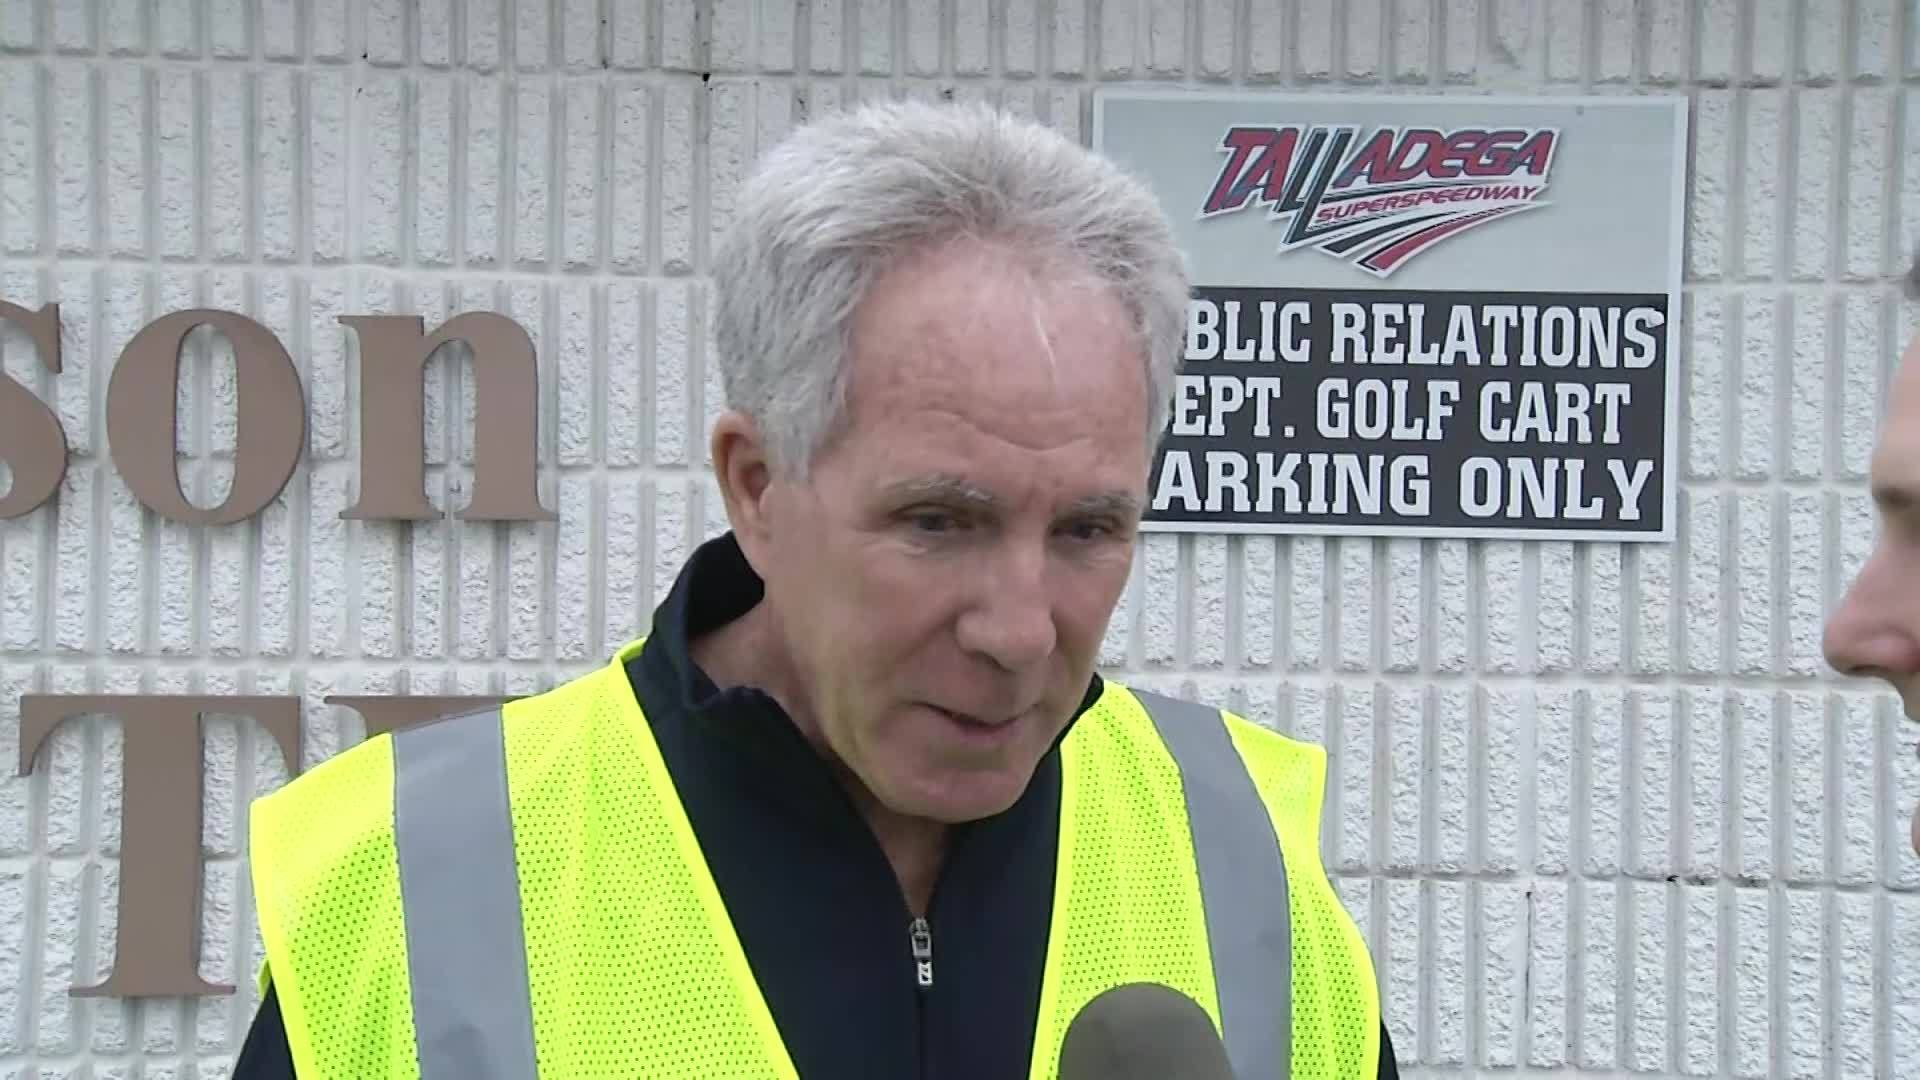 1 on 1 with Darrell Waltrip